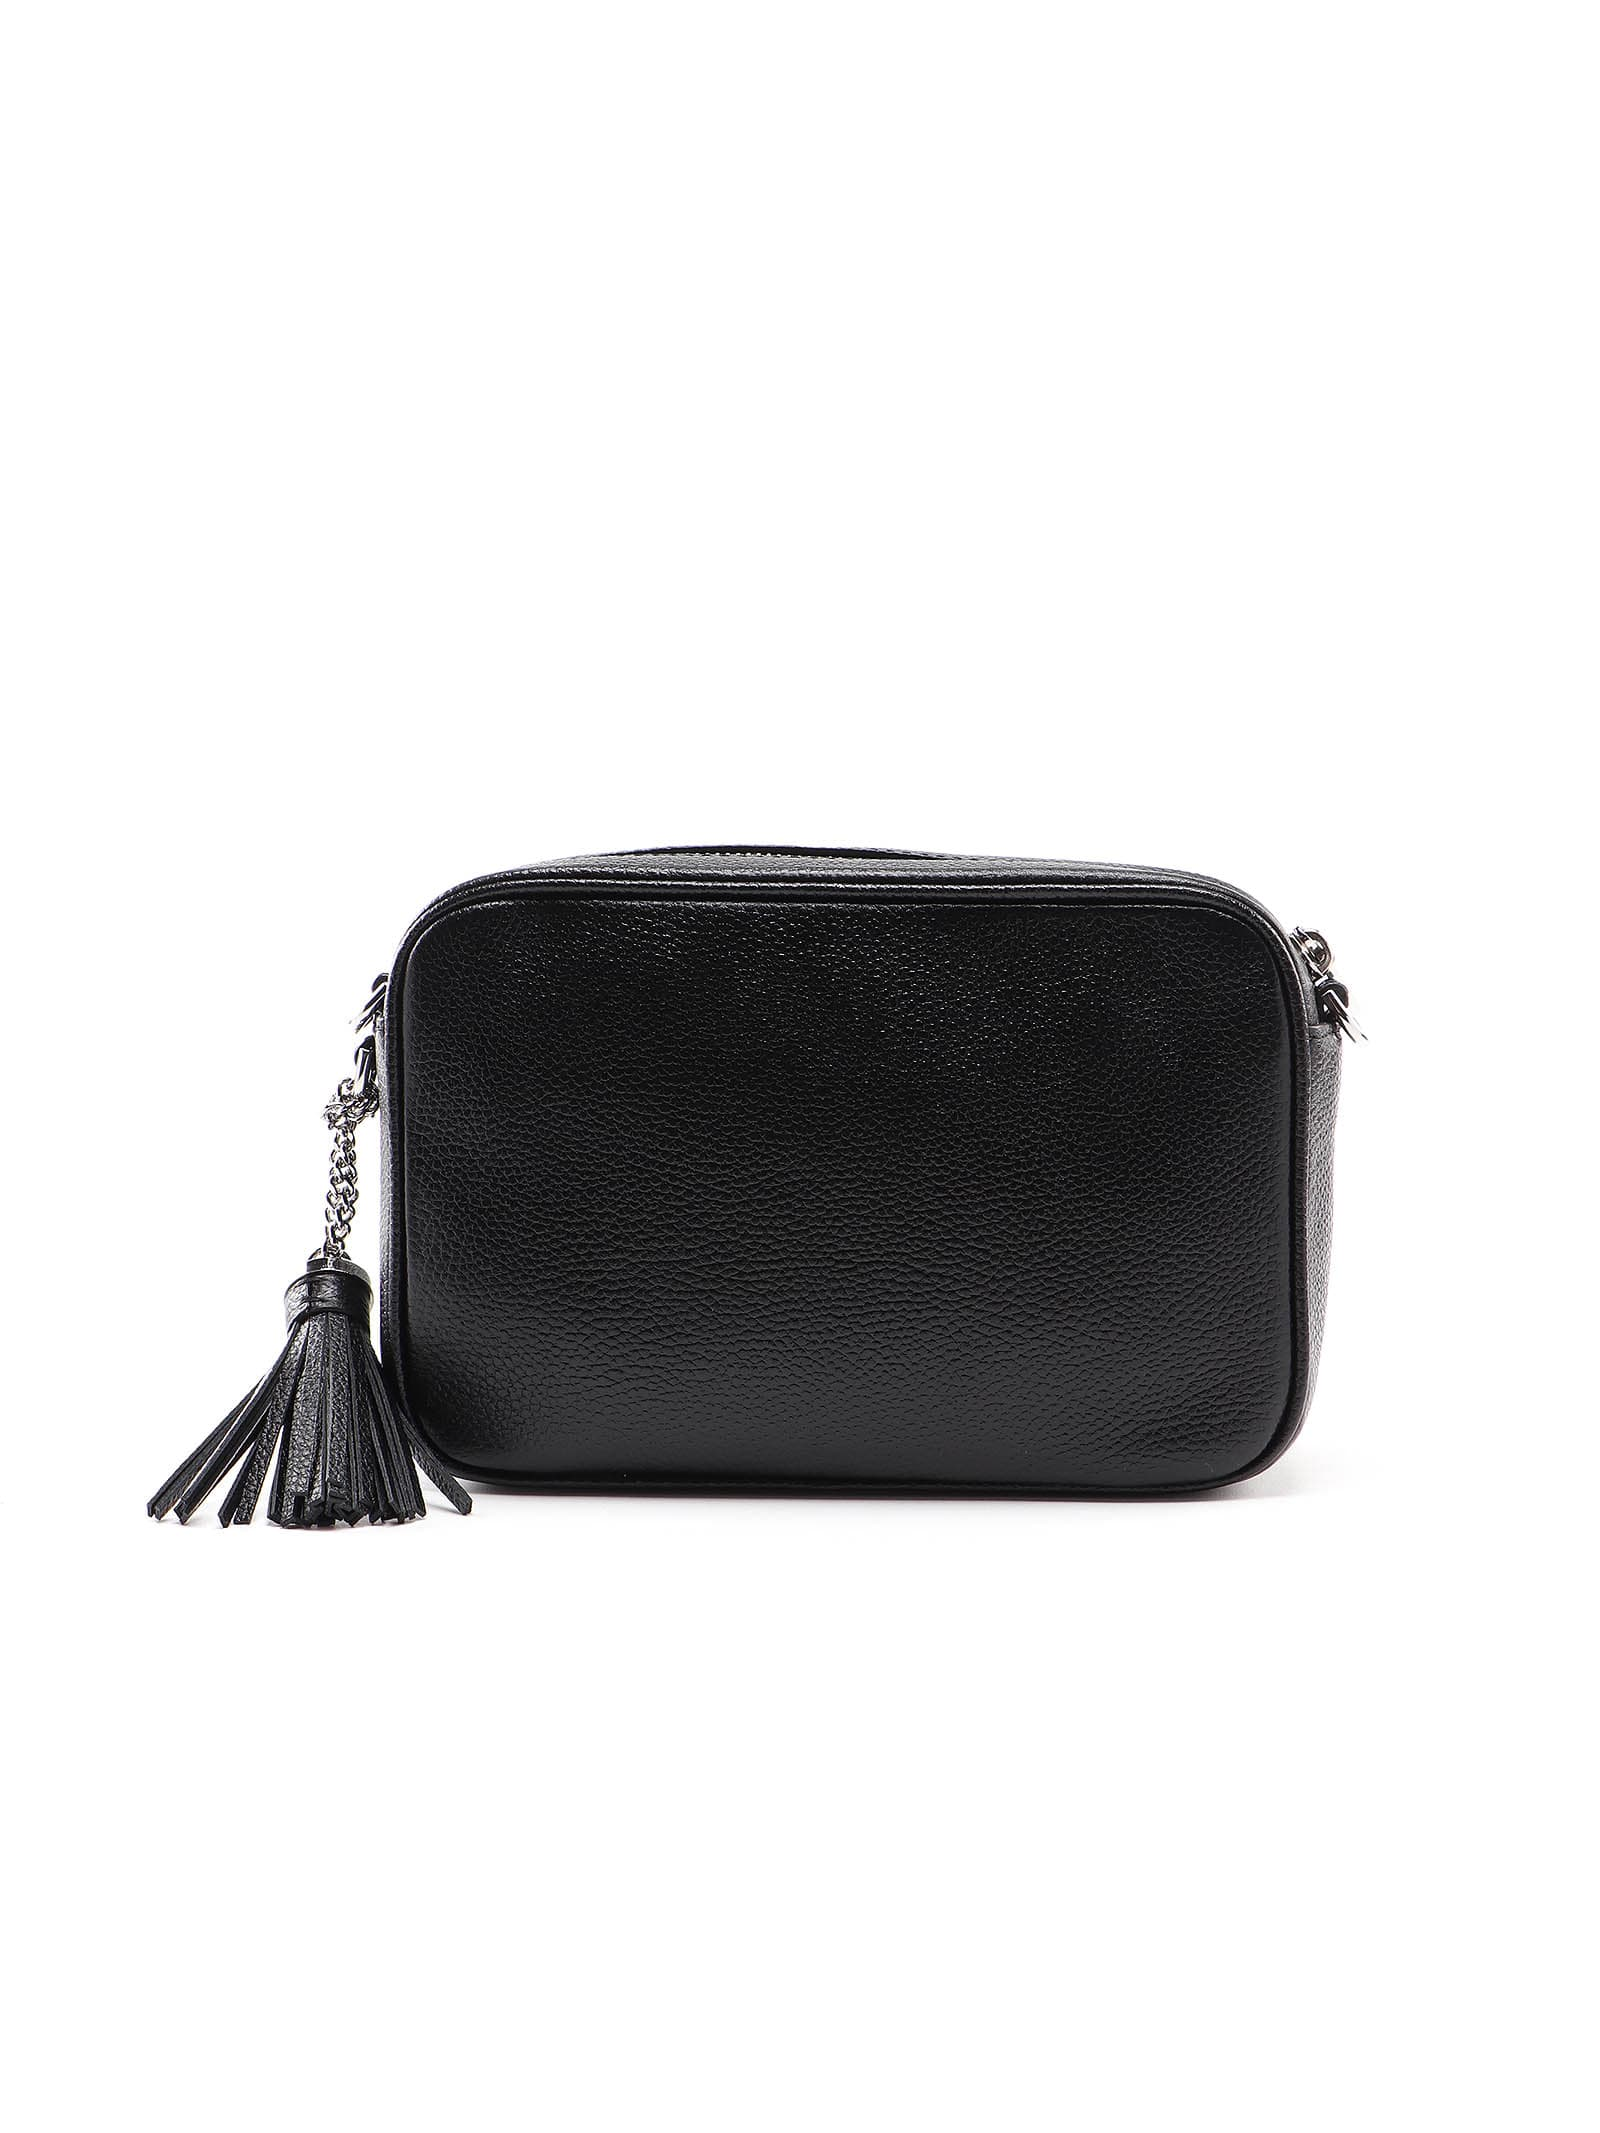 Michael Kors Michael Kors Jet Set Md Camera Bag Black